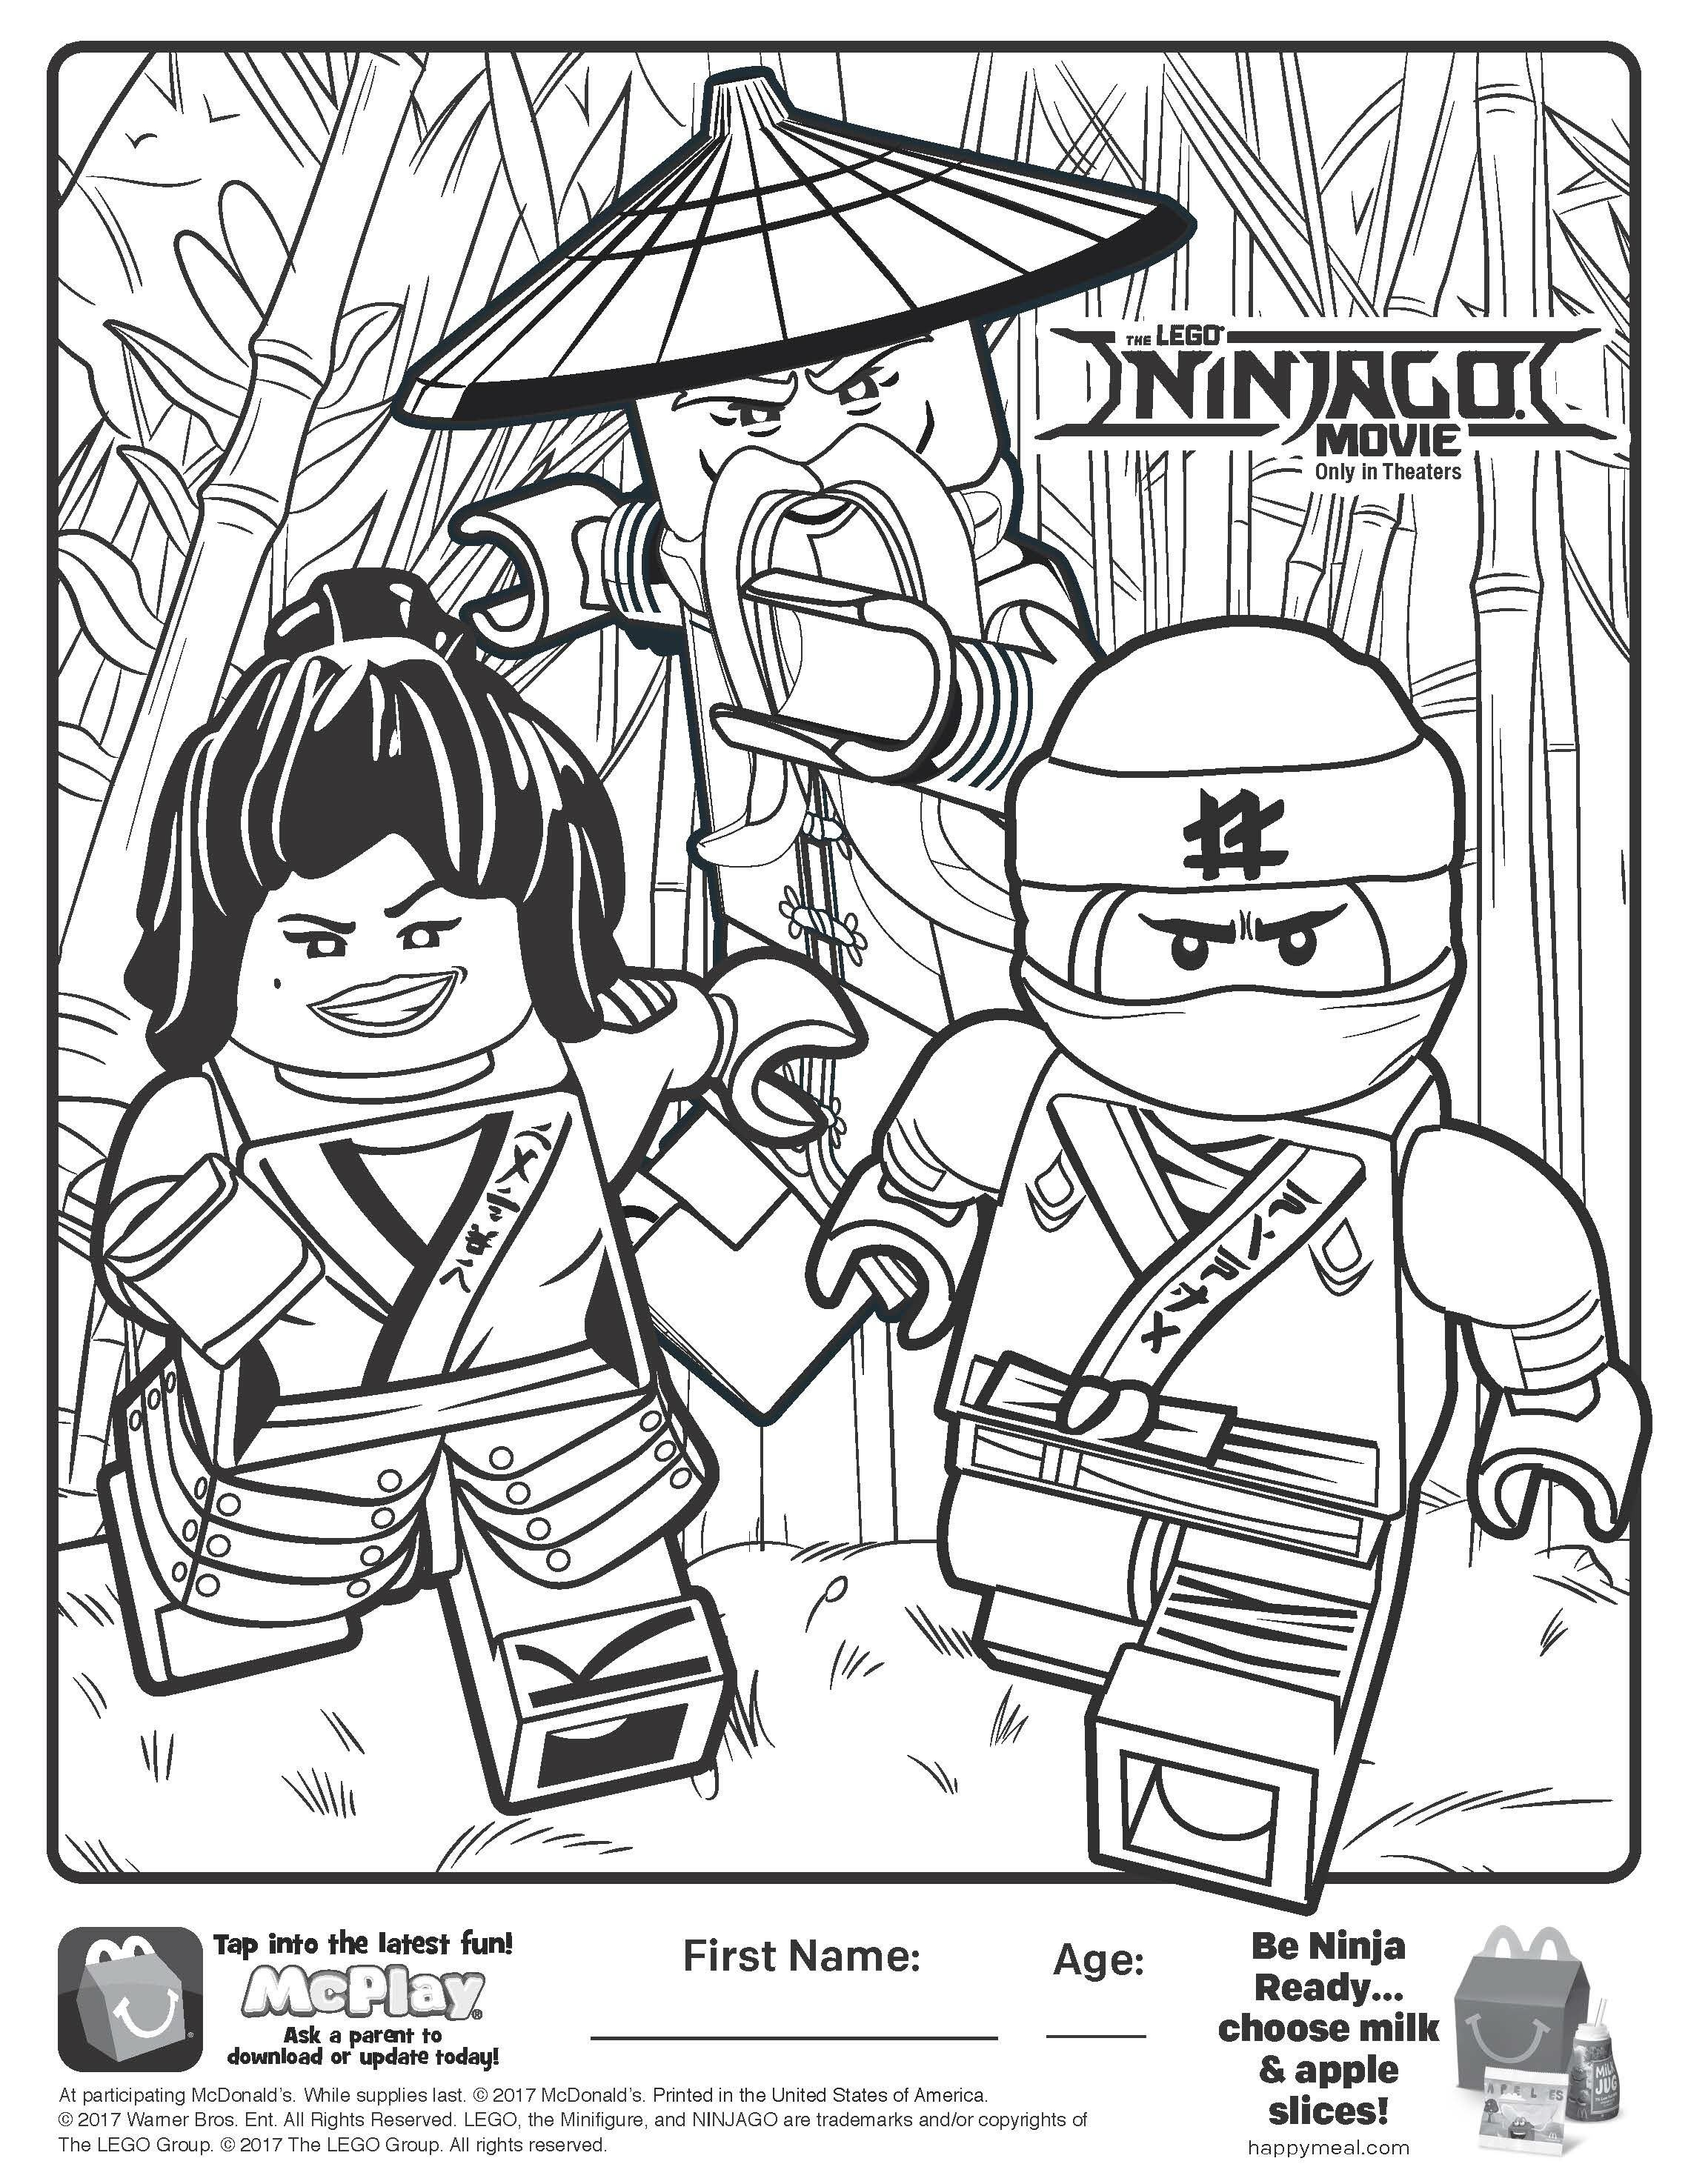 Pin by Janet Lewis on kids night 10/10 10 | Pinterest | Coloring pages ...